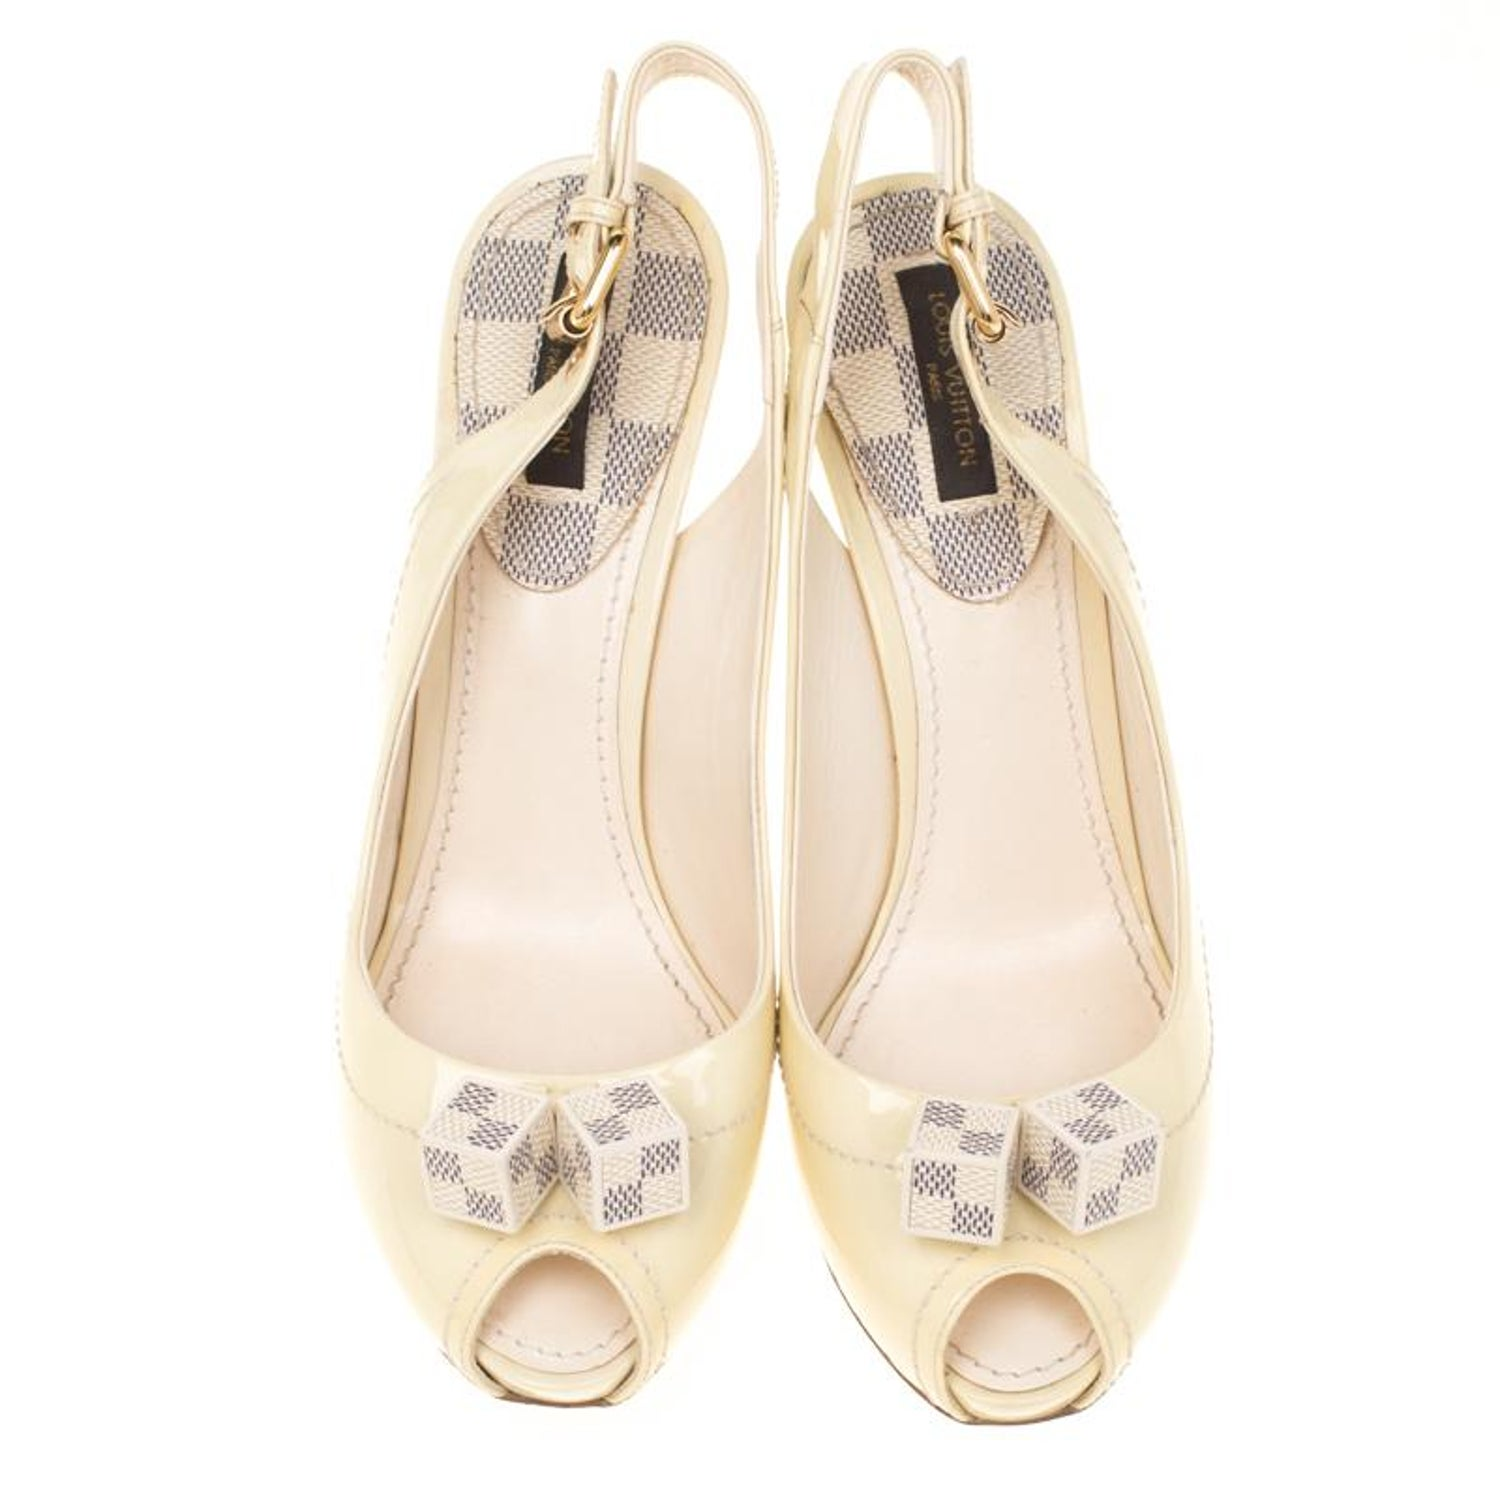 4f841ee488e1c Louis Vuitton Cream Leather Damier Azur Canvas Pumps Size 37 For Sale at  1stdibs